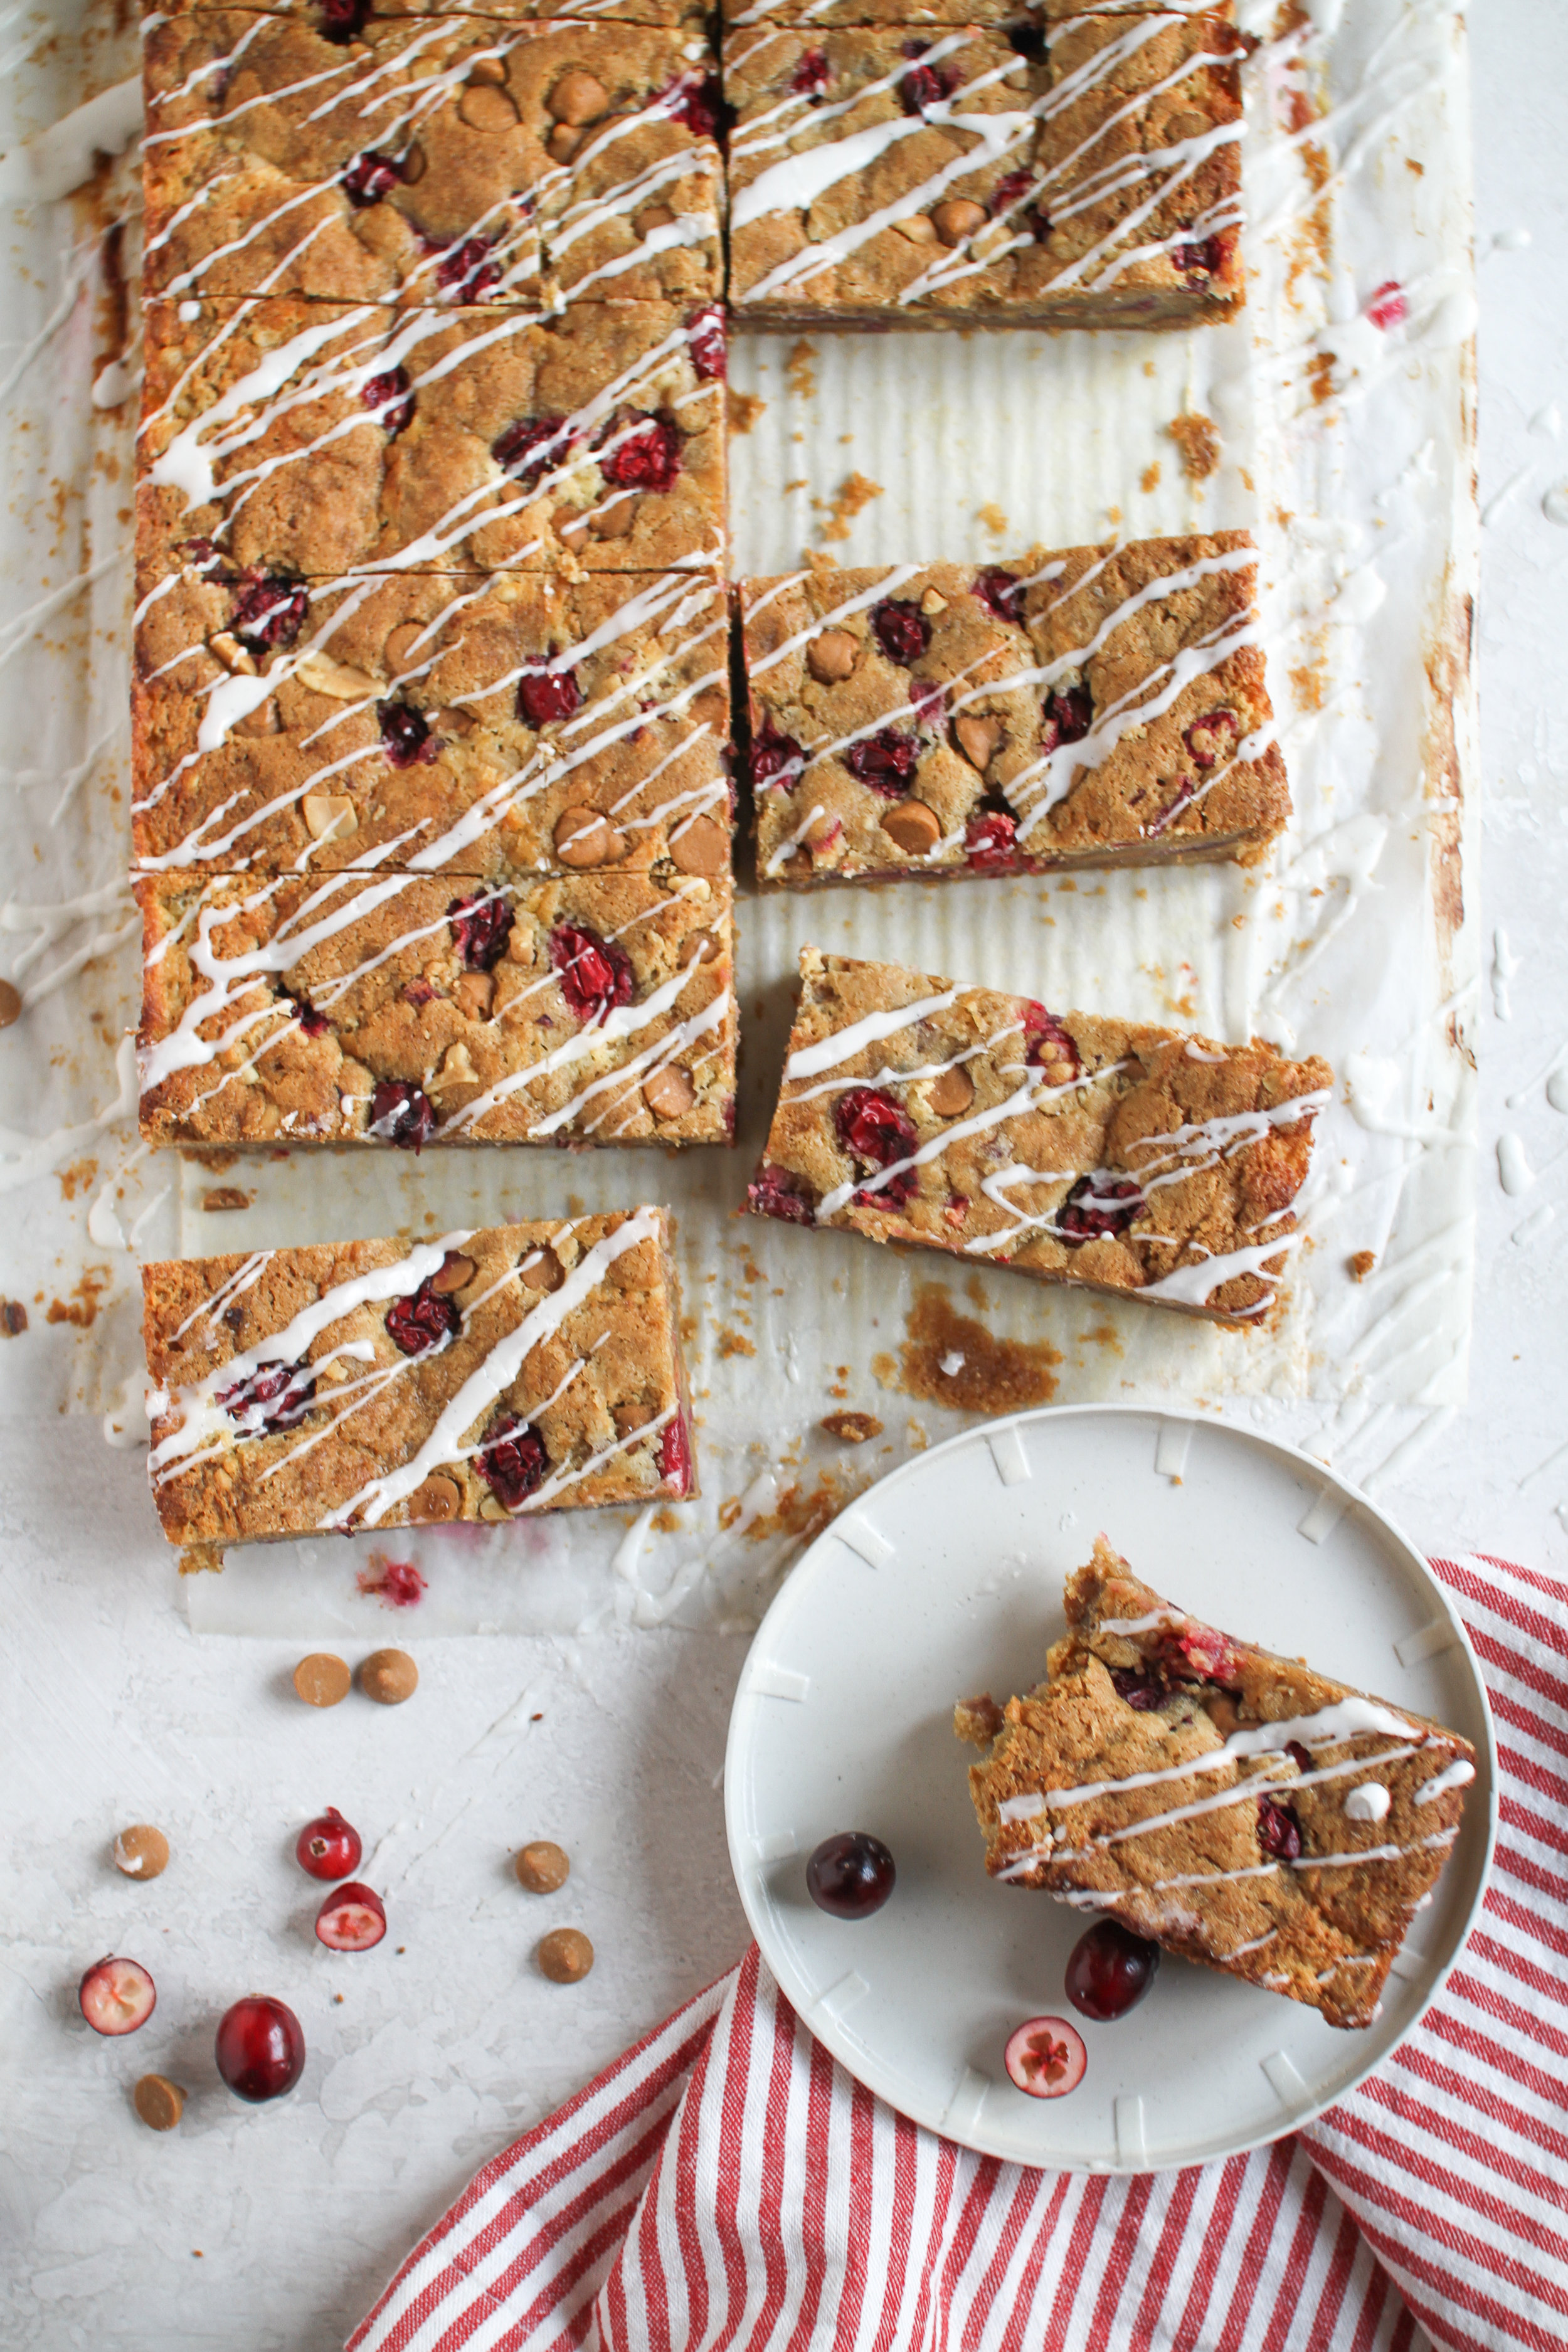 Peanut Butter & Cranberry Jam Mascarpone Cheesecake Cookie Bars with vanilla bean icing by Fox and Crane - foxandcrane.com